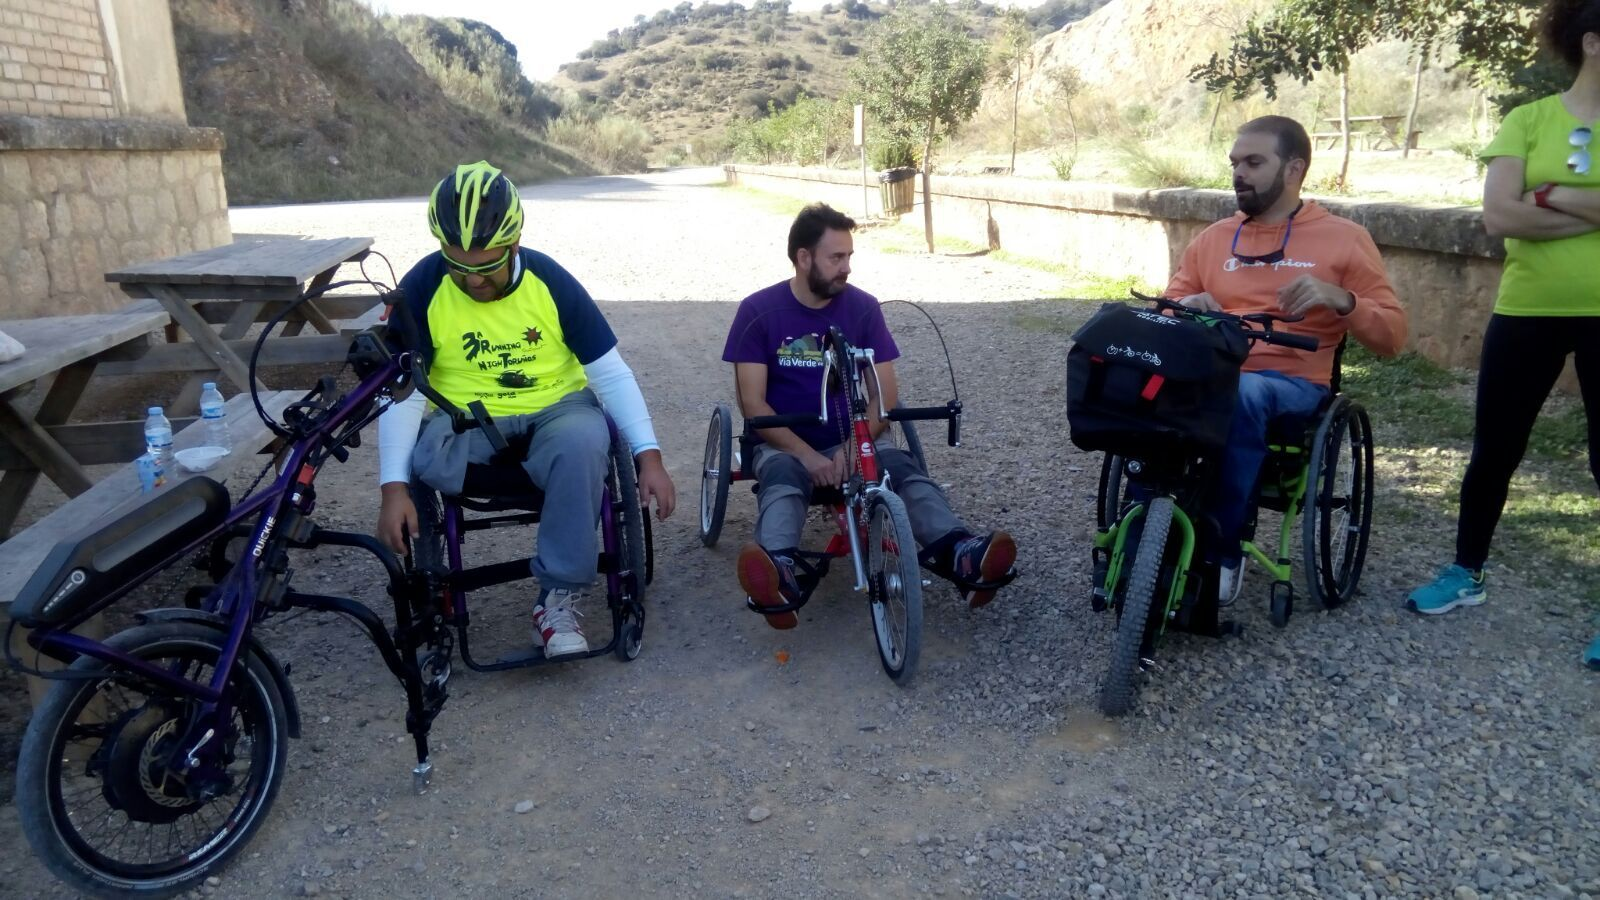 Vía Verde de la Sierra Accesible – Greenways4ALL